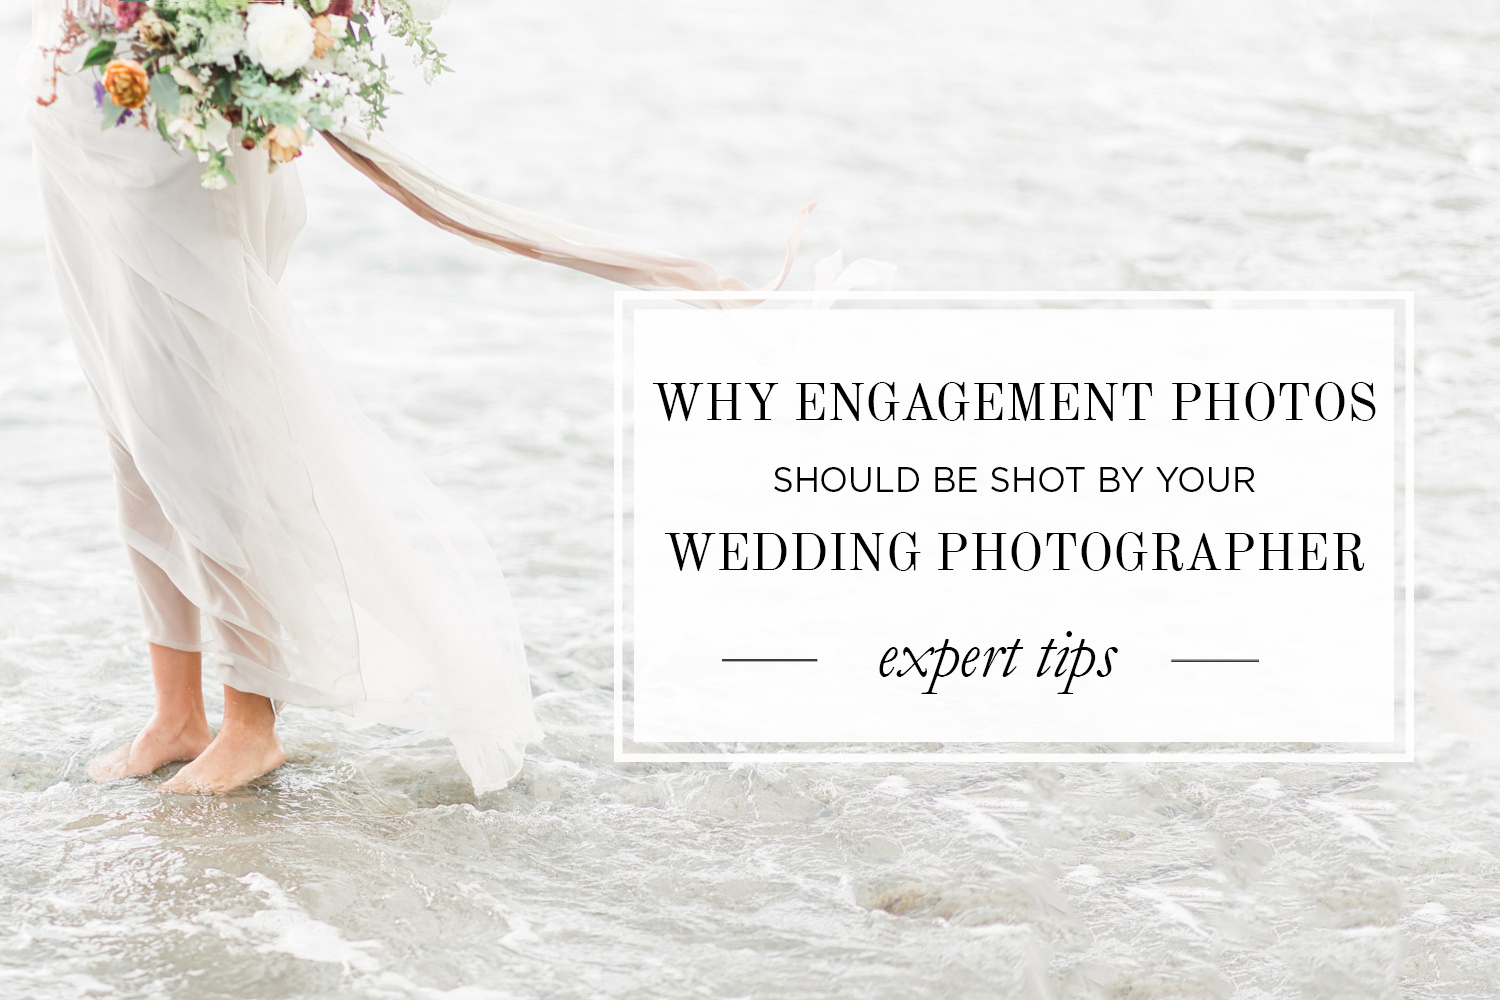 Why You Should Use the Same Photographer for Your Engagement and Wedding Photos